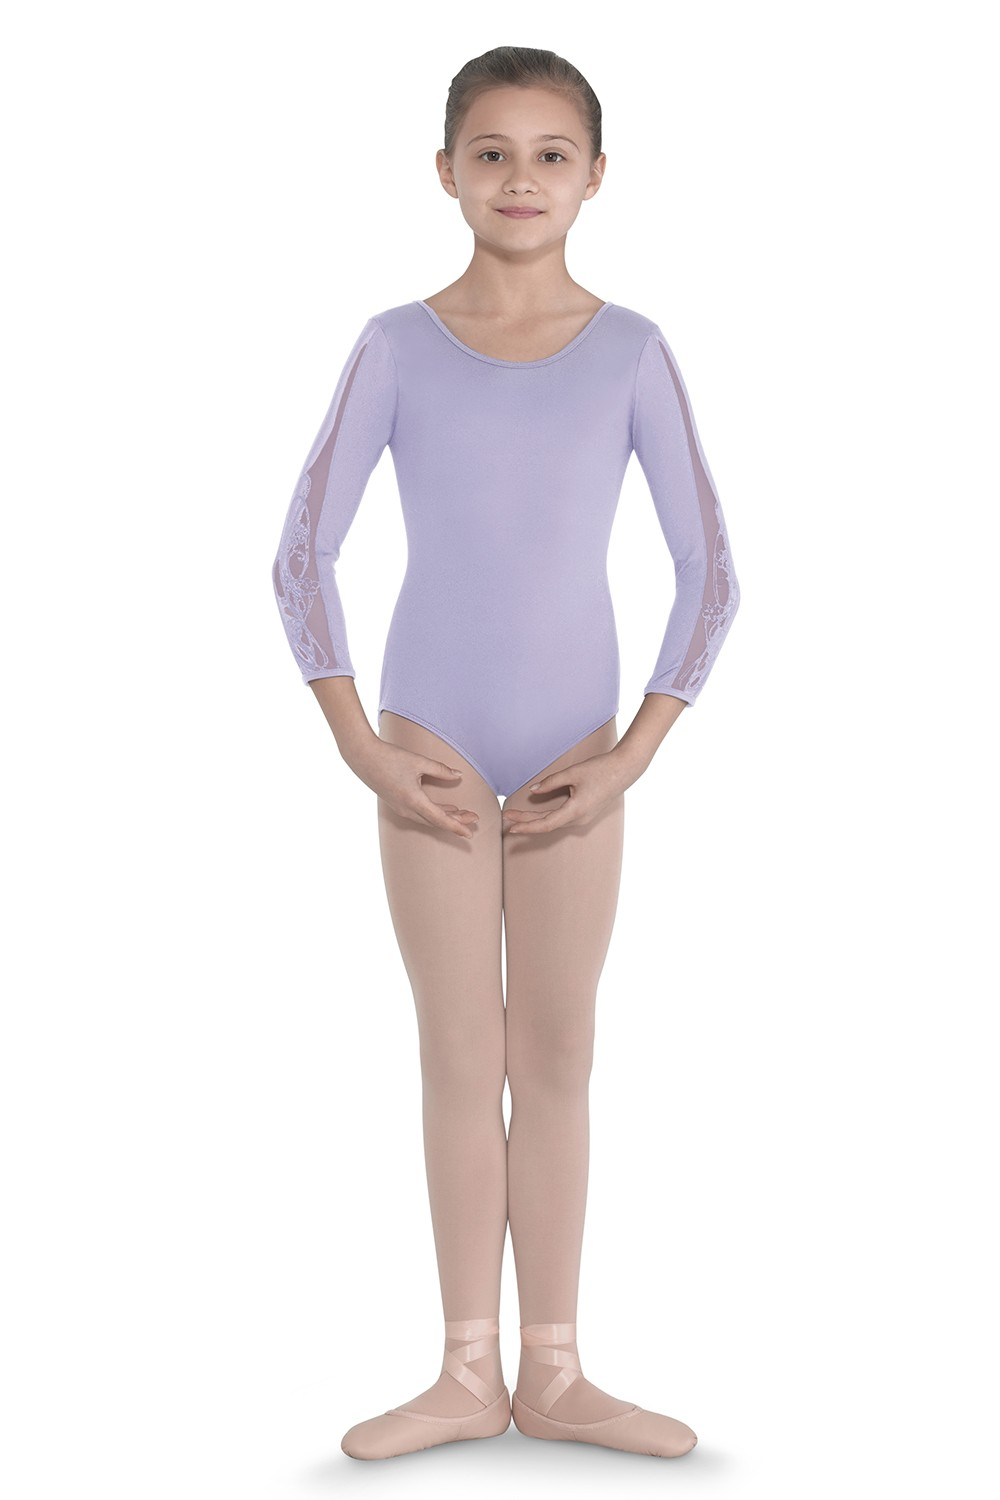 Embroidered Mesh 3/4 Sleeve Leotard Children's Dance Leotards